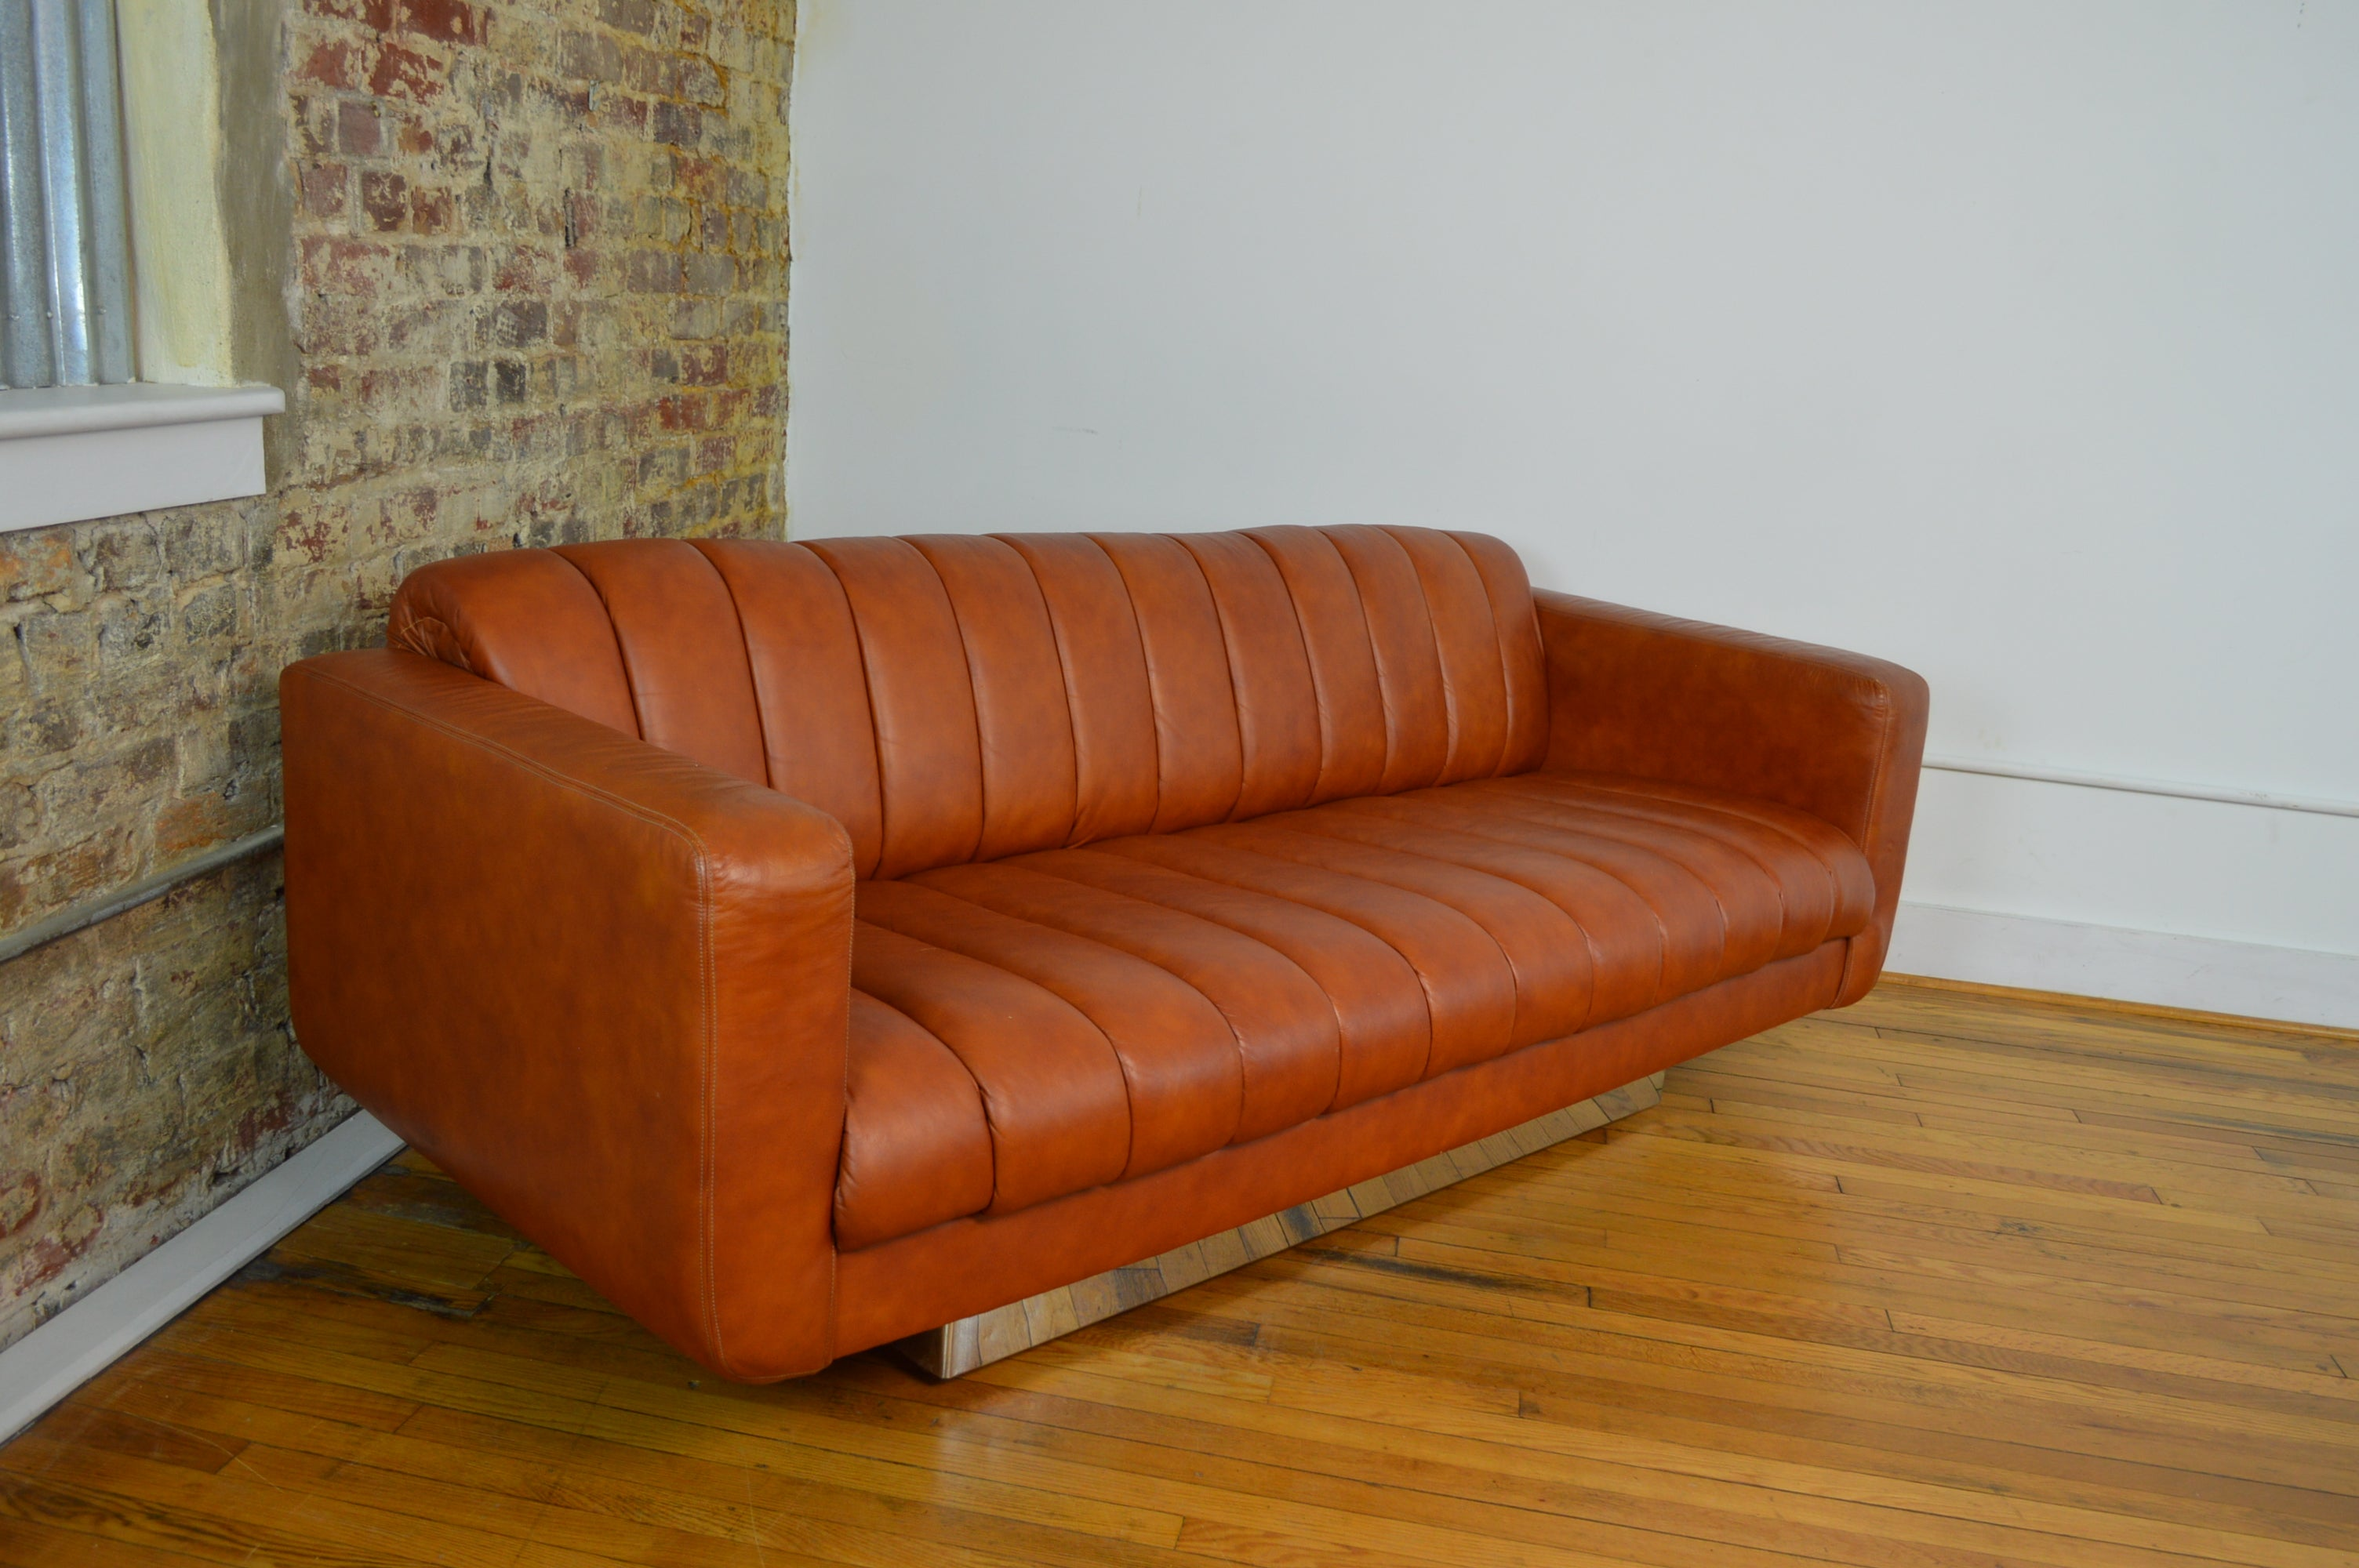 Fabulous Modernist Leather And Chrome Sofa By Davis Furniture